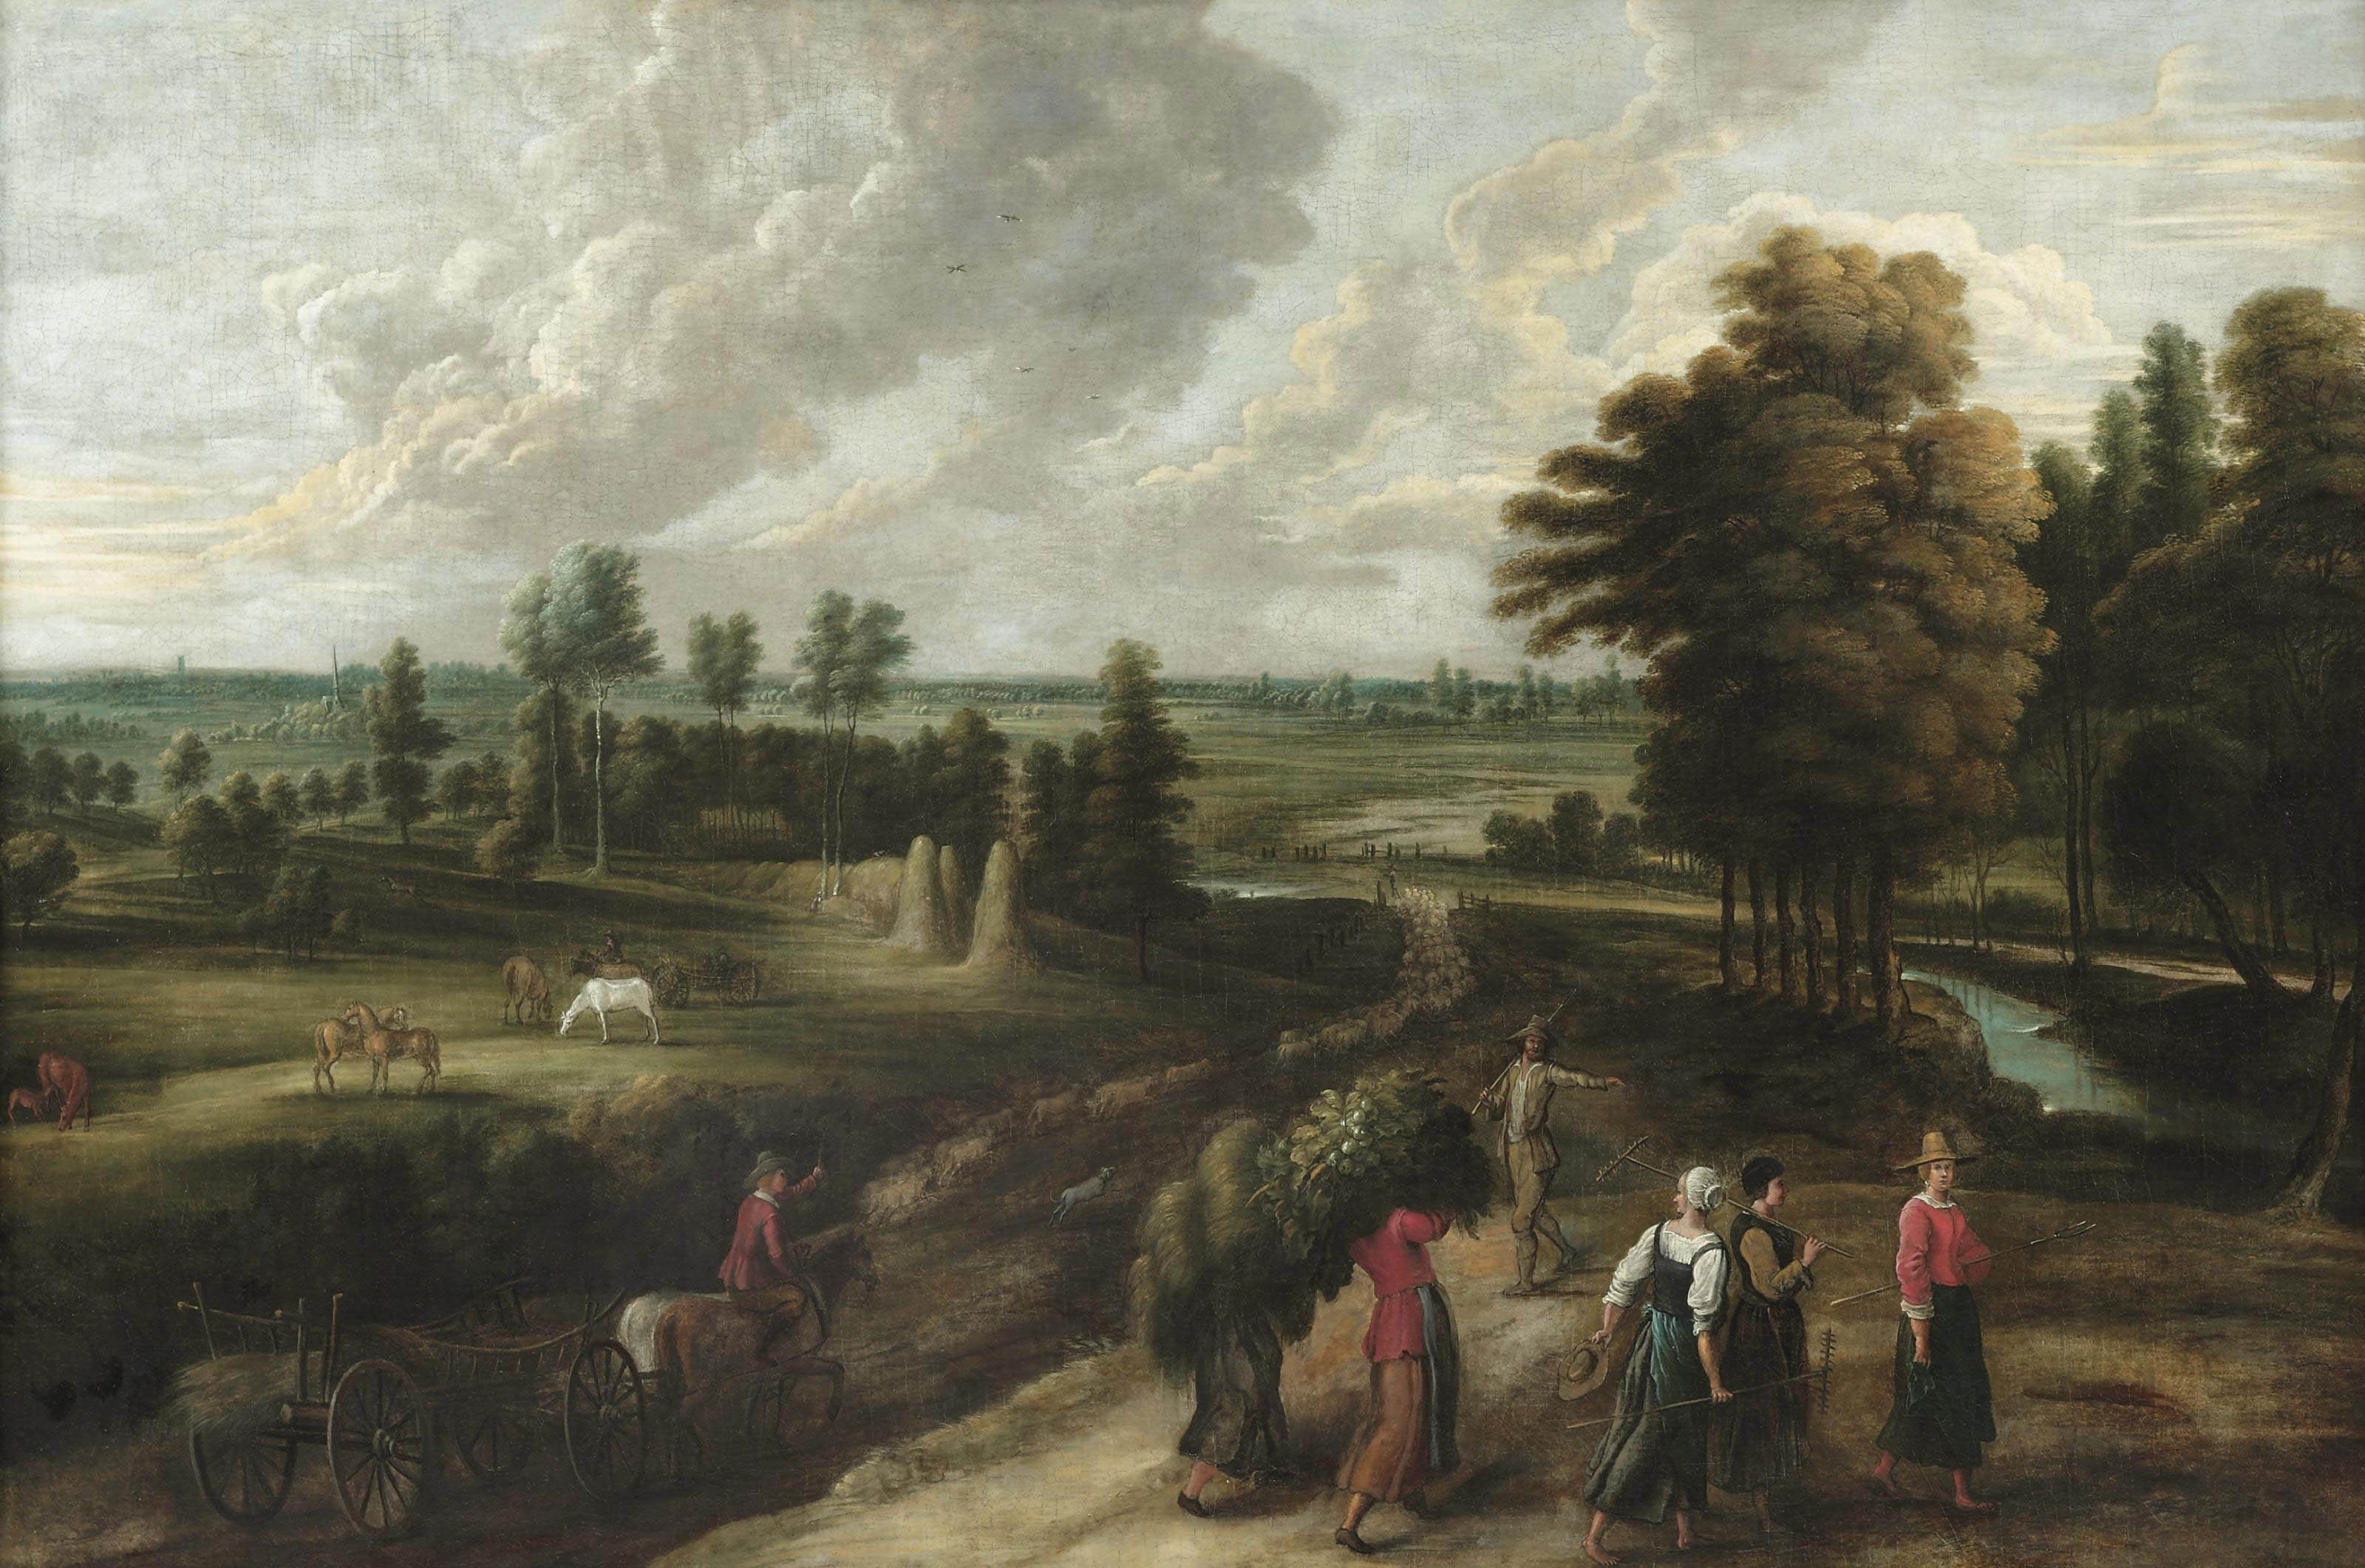 An extensive landscape with harvesters carrying their produce along a track in the foreground, a herdsman driving a flock of sheep into the distance